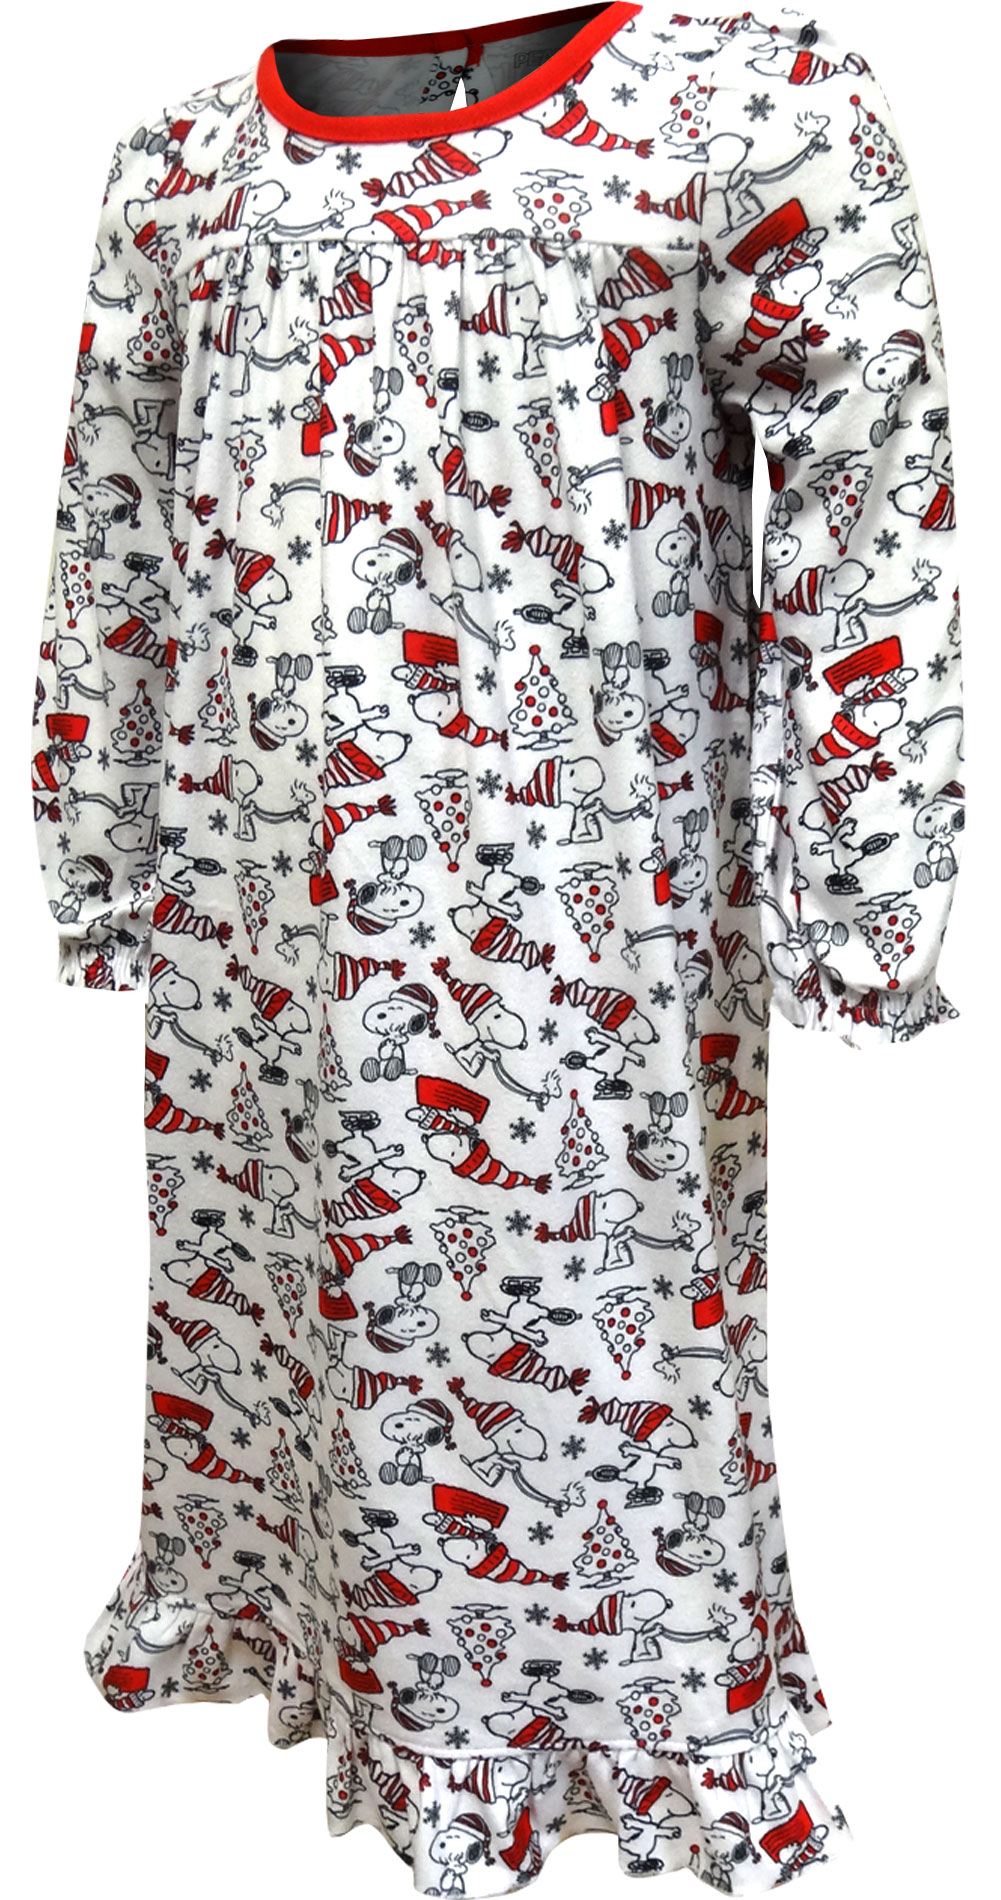 Image of Holiday Fun Snoopy Christmas Flannel Nightgown for Toddler Girls